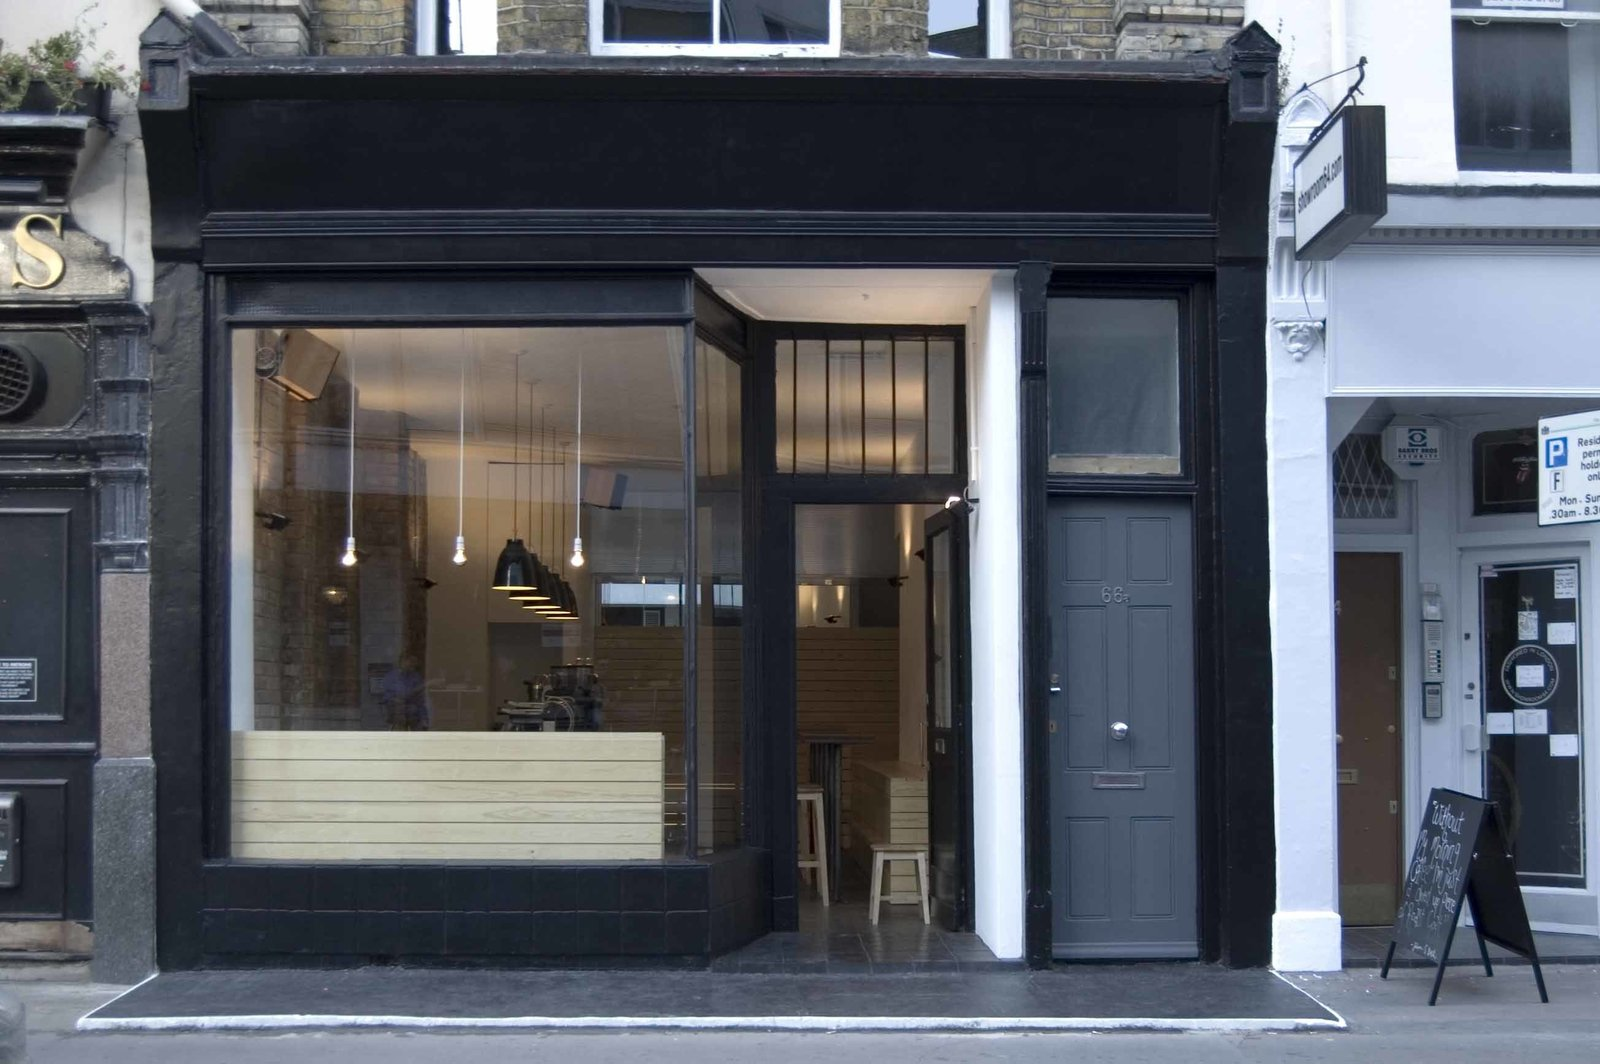 Outdoor Kaffeine  Tozer refurbished the interior and exterior of this tiny retail space in Fitzrovia, preserving the existing shopfront and painting it jet-black.  The Architect Behind Some of London's Homiest Coffee Shops by Luke Hopping